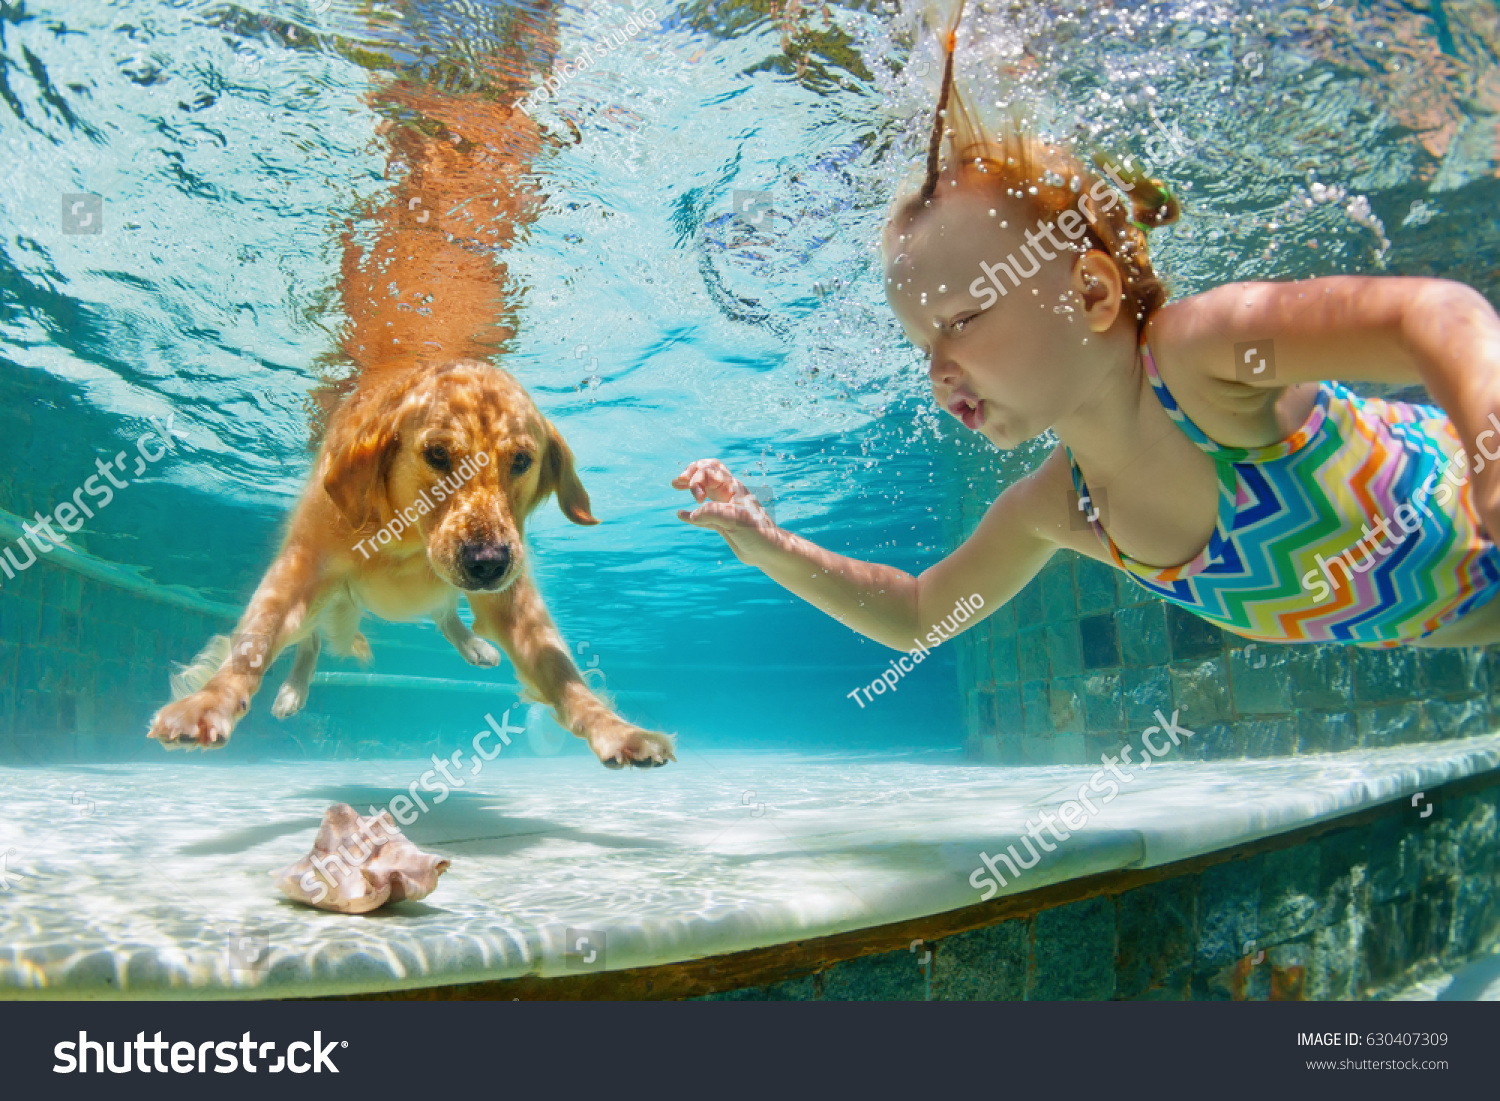 Underwater action. Smiley child play with fun, training golden retriever puppy in swimming pool - jump and dive. Active water games with family pet, popular dog breed like companion on summer vacation #630407309